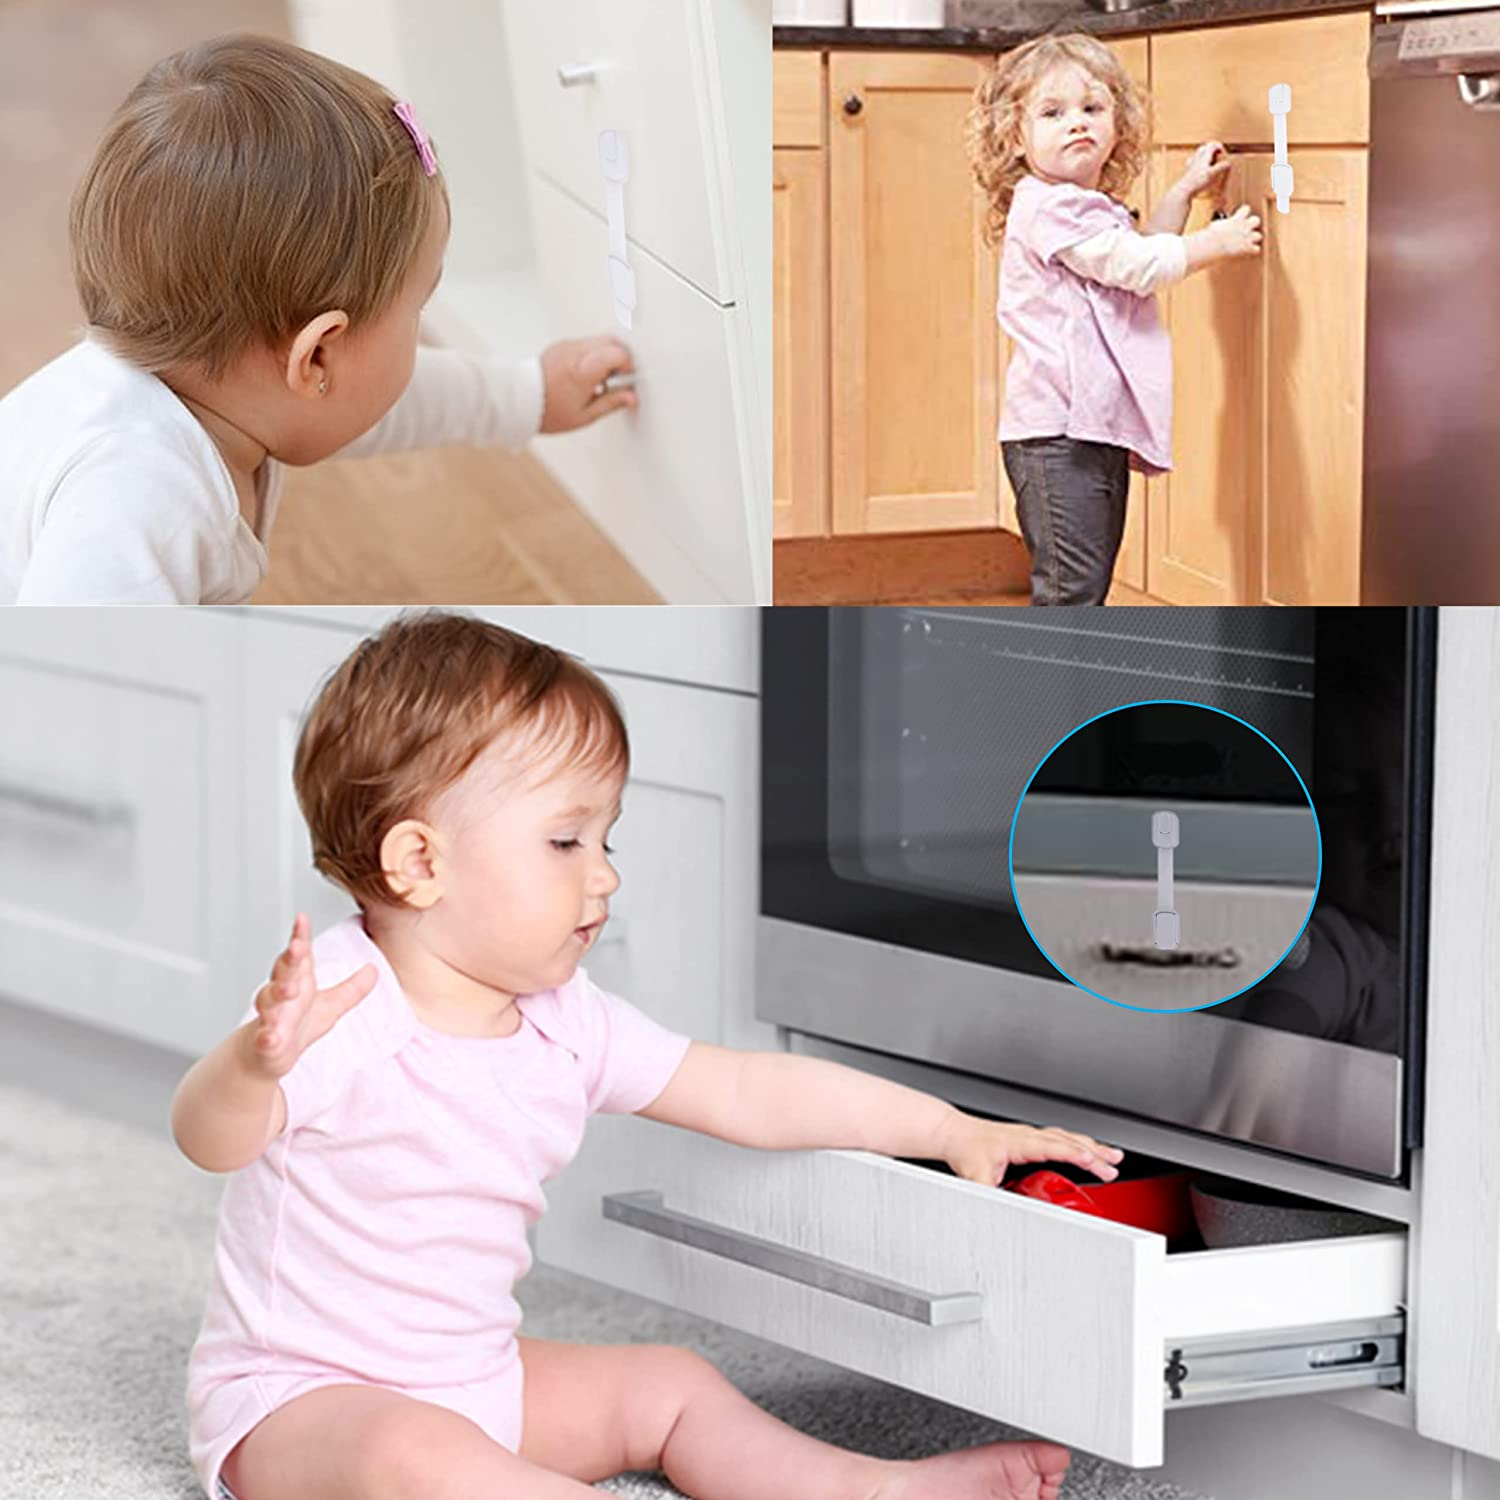 6 Pack - Baby Safety Cabinet Locks - Baby Proofing Cabinet Lock Toilet Locks Child Safety - Сhild Safety Locks for Drawers